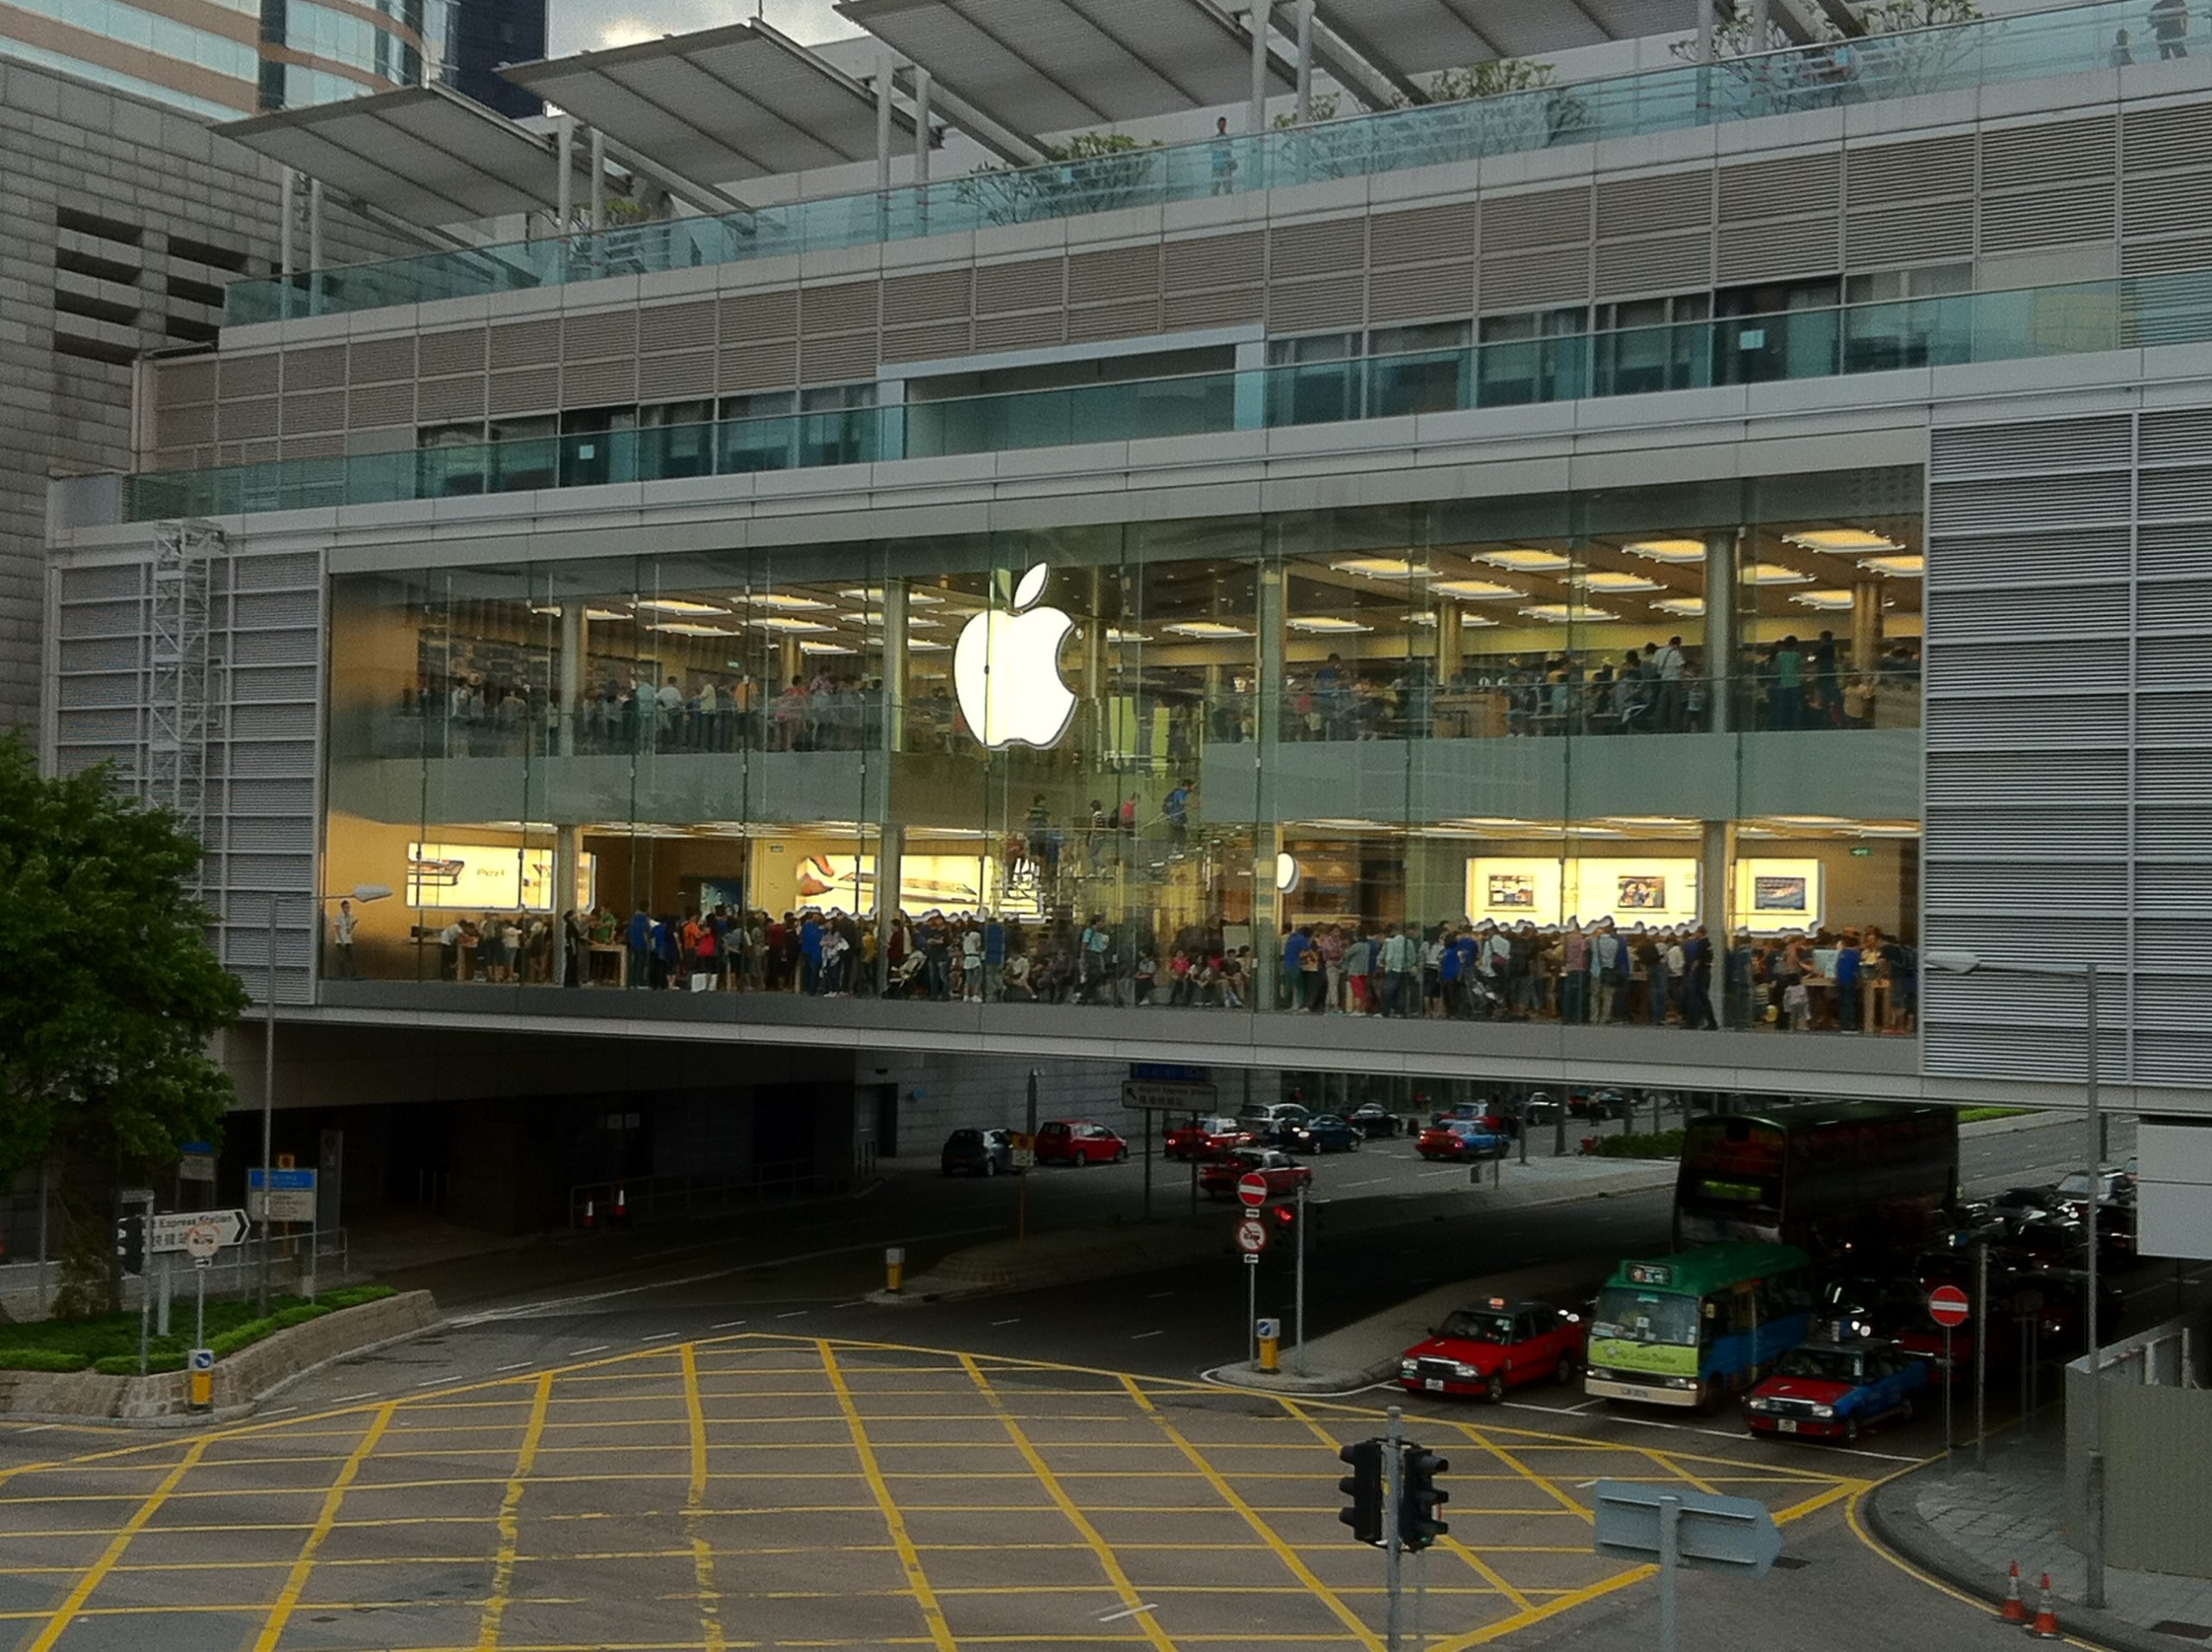 HK Apple Store Opened Exterior scaled